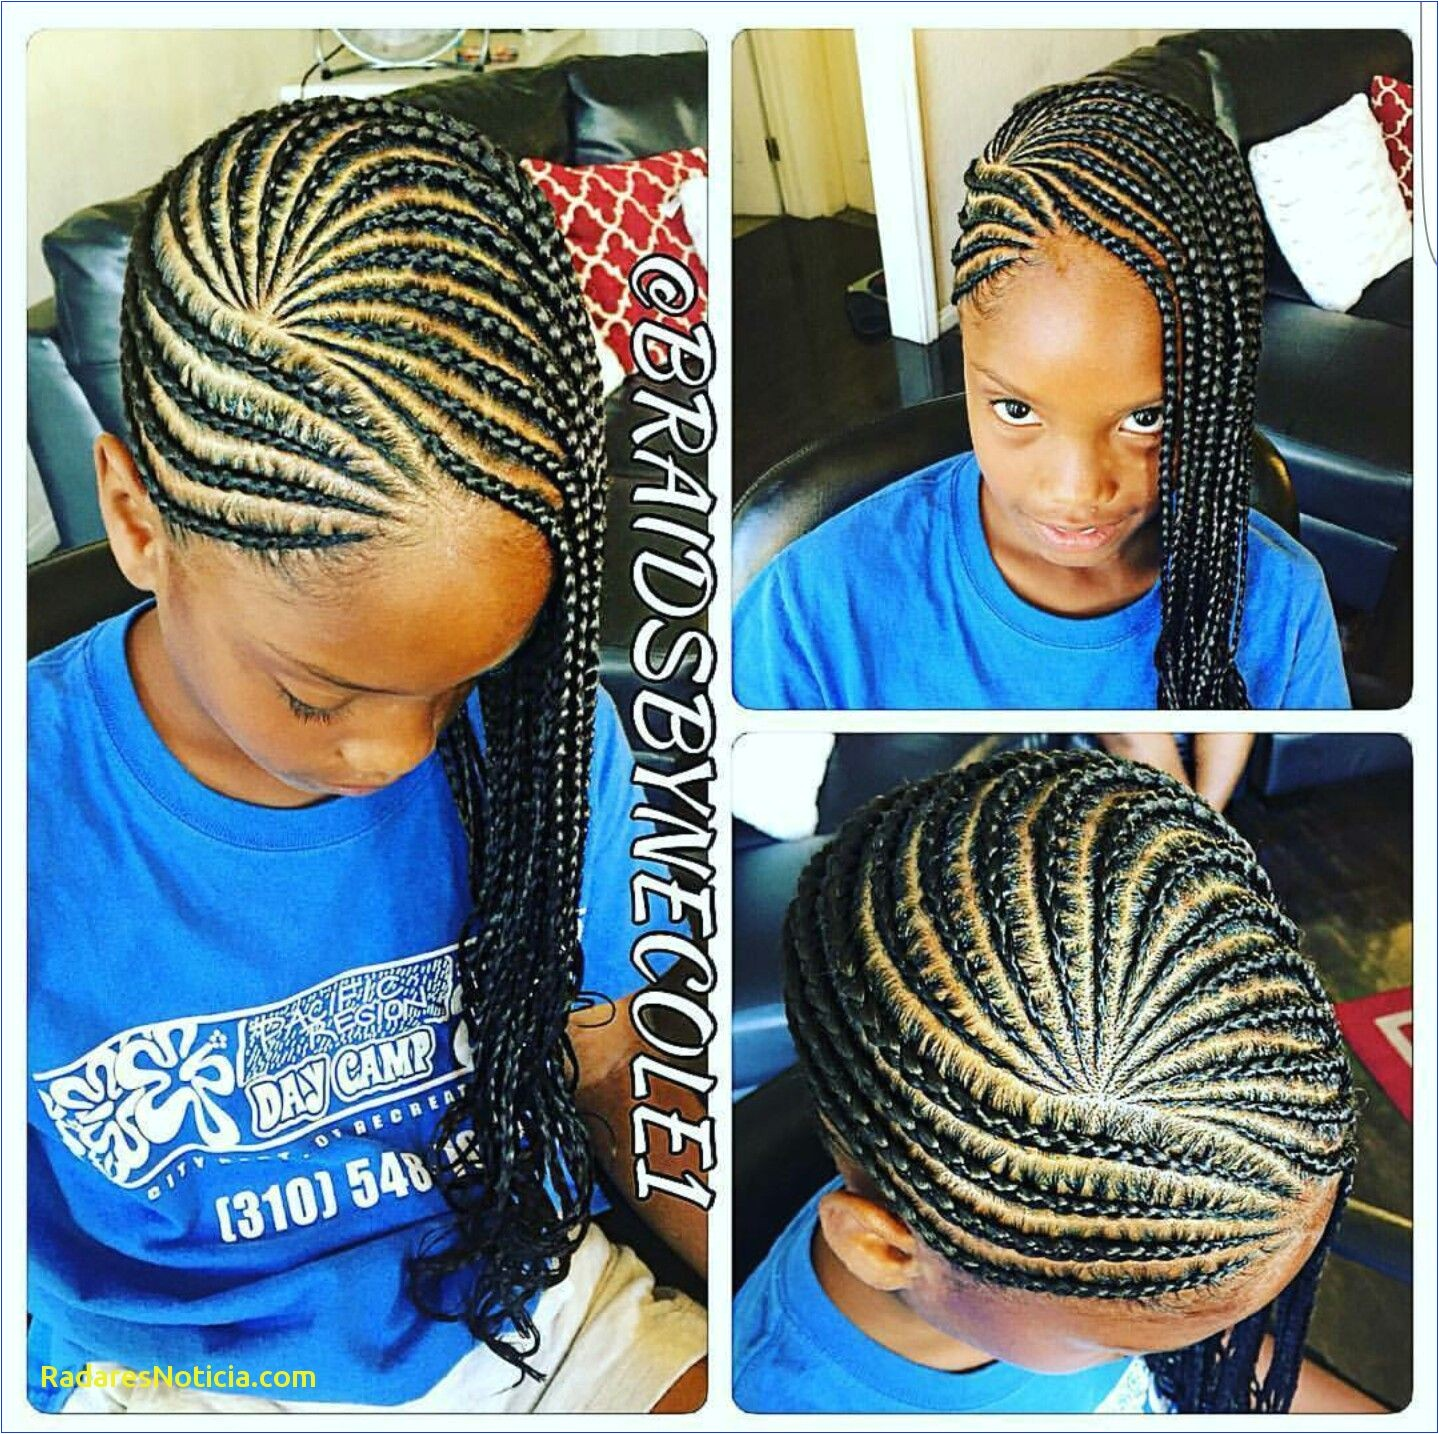 Hairstyles for 10 Year Olds Cornrow Hairstyles for 12 Year Olds Children S Cornrows Natural Hair